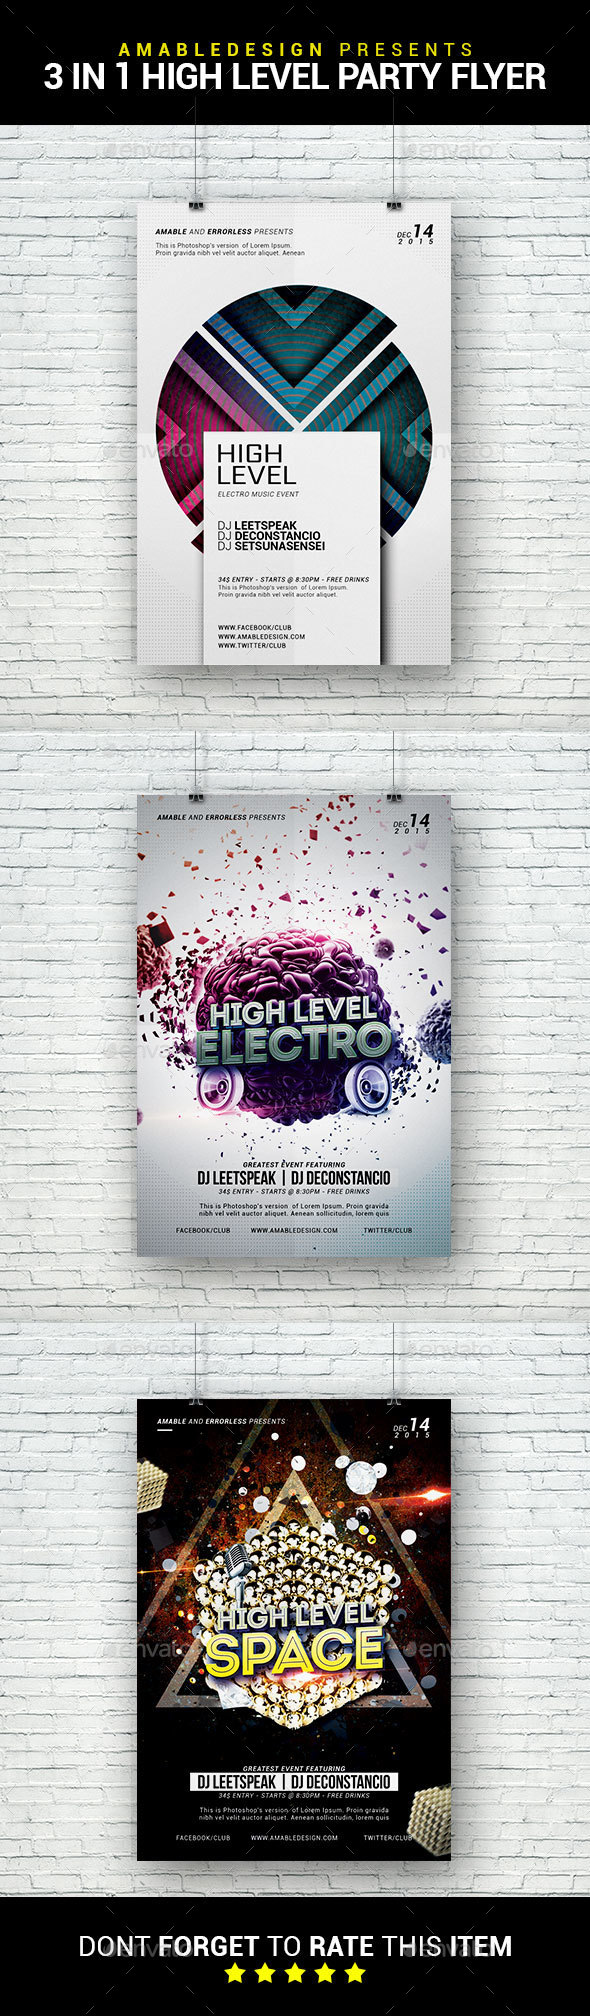 3 in 1 High Level Flyer/Poster Bundle - Clubs & Parties Events